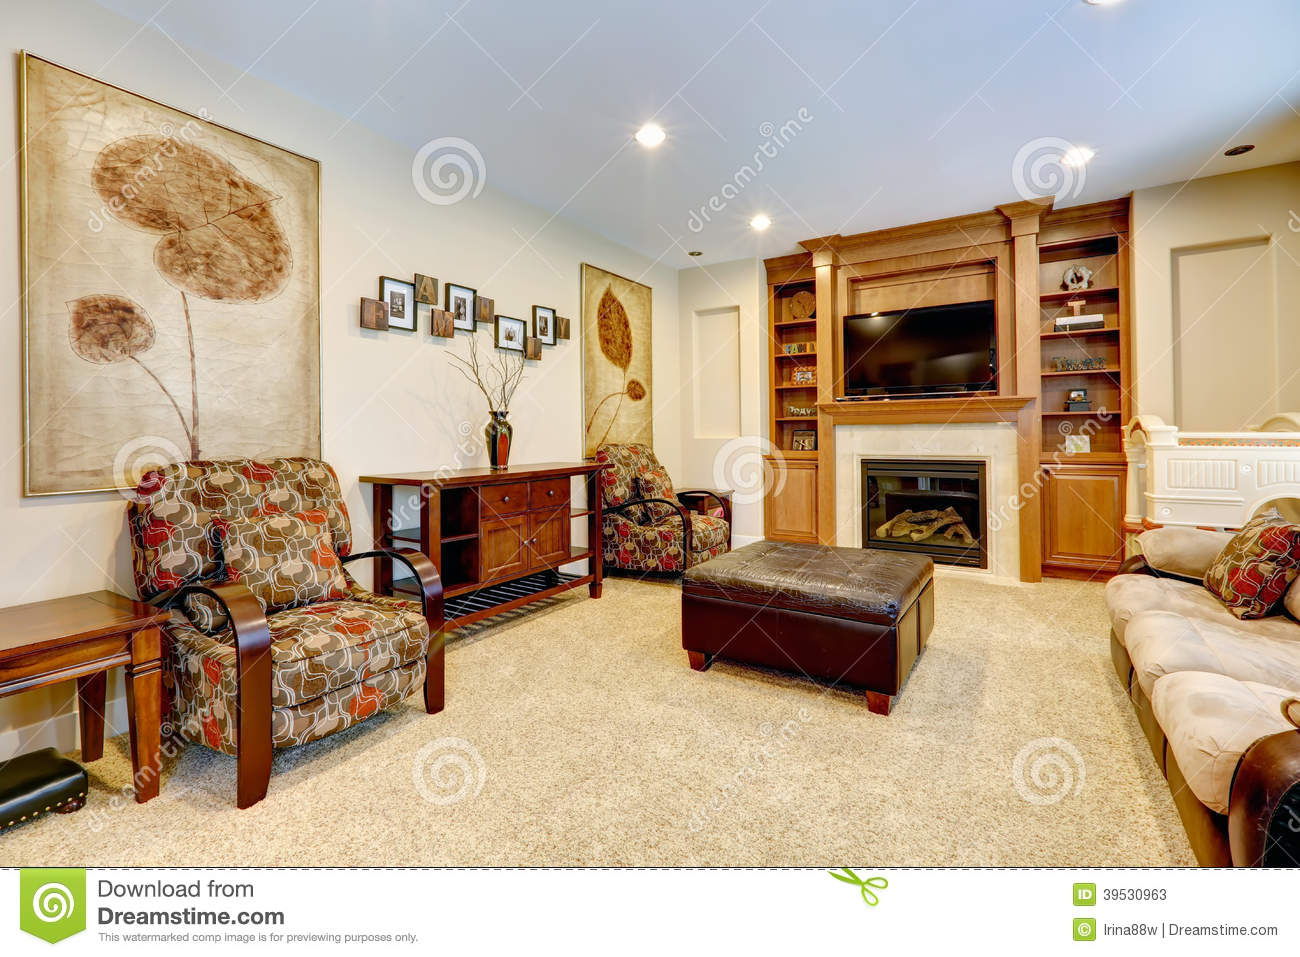 Luxury Living Rooms With Tv luxury living room with fireplace and tv stock photo - image: 39530963